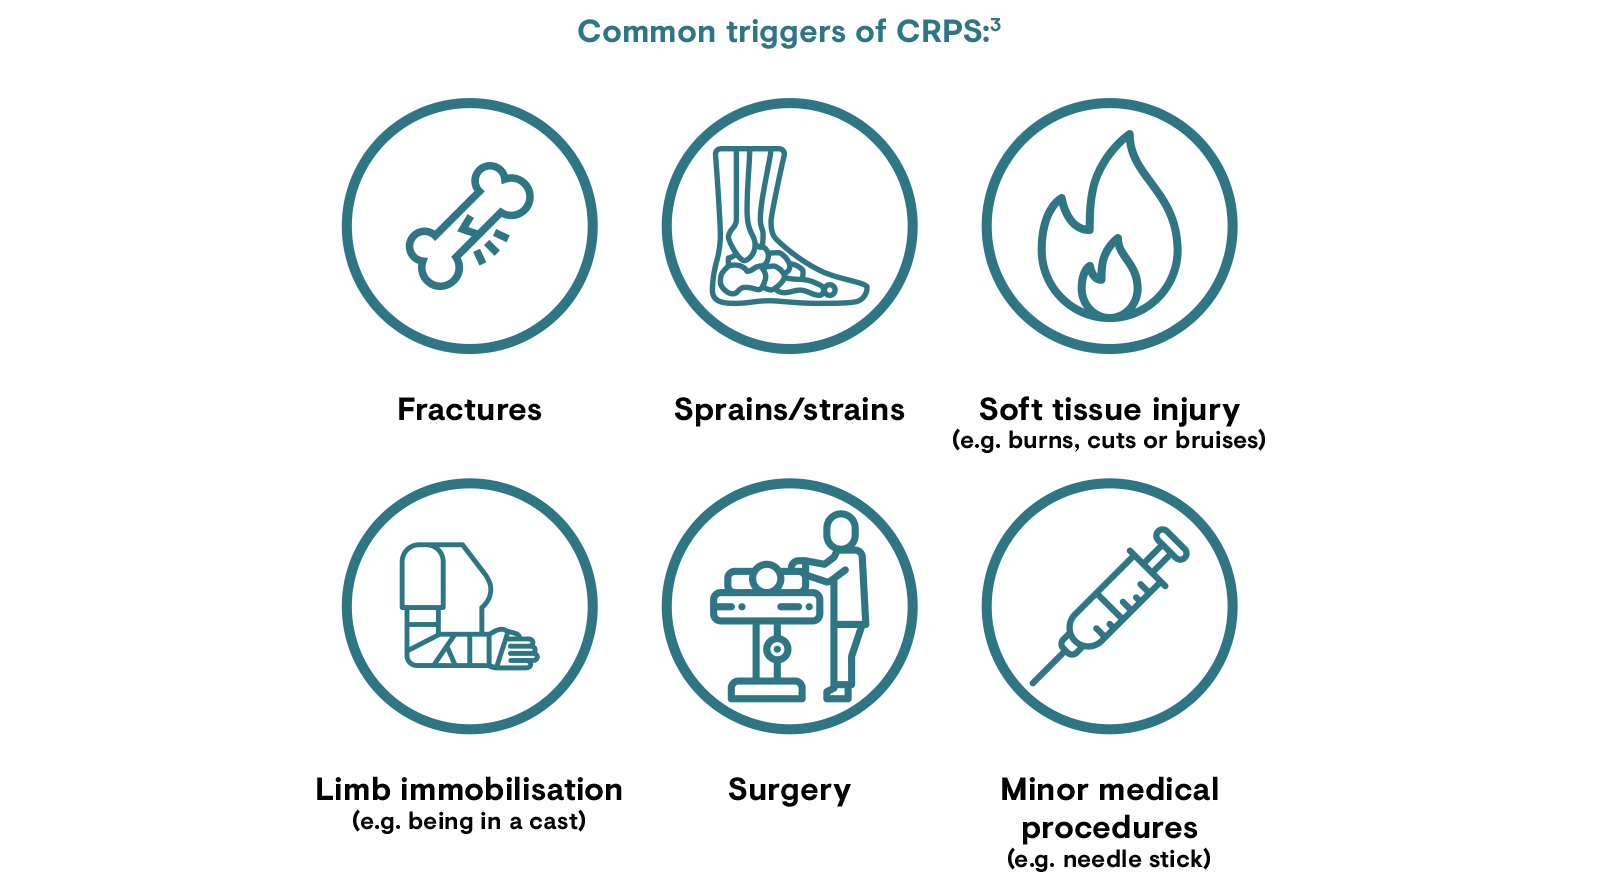 Common triggers of CRPS